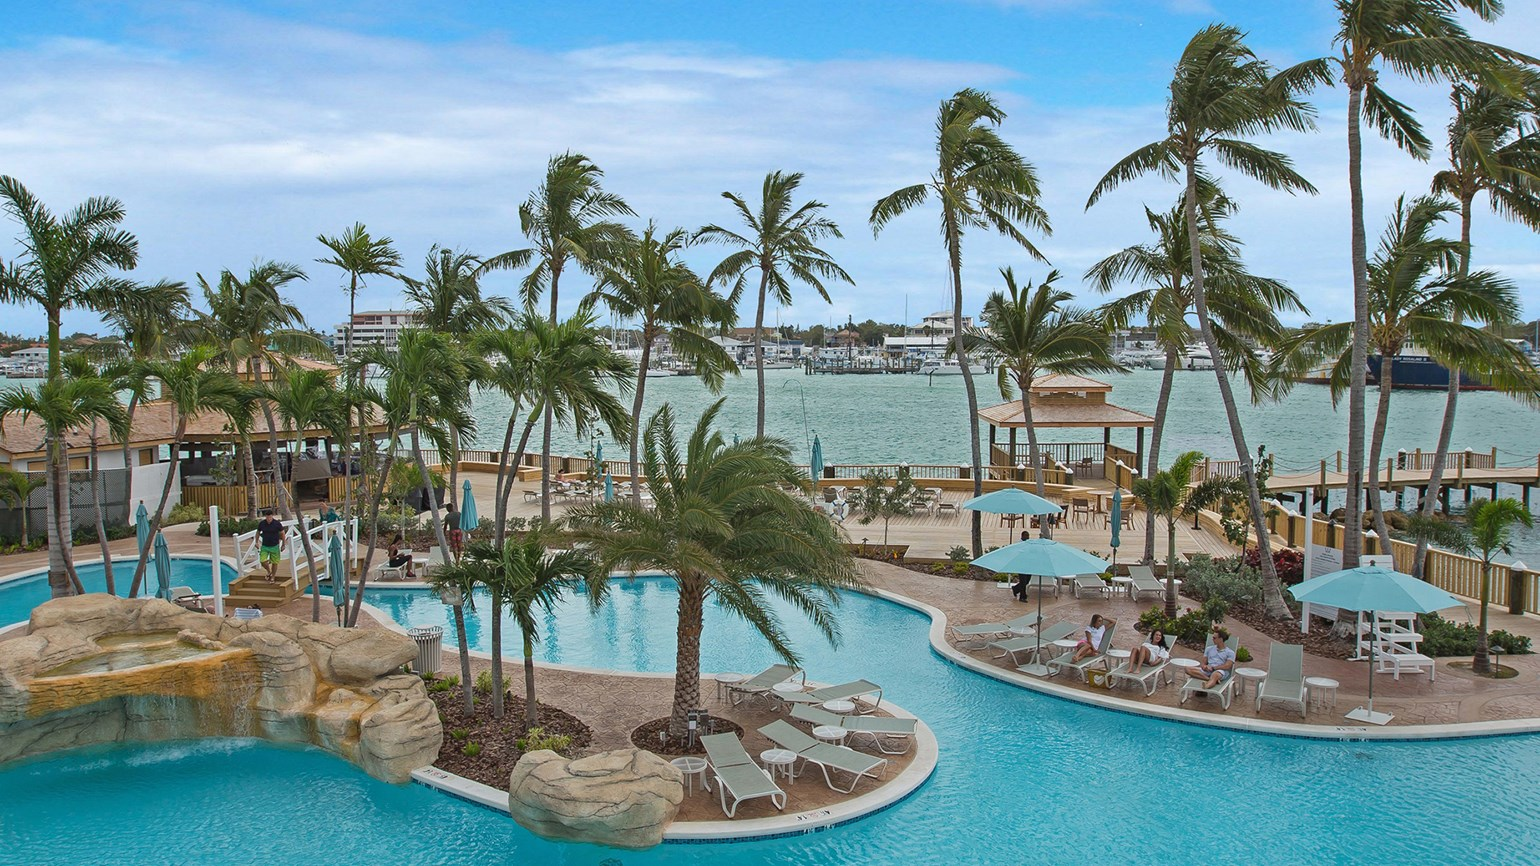 Hotel stay in Bahamas from $175